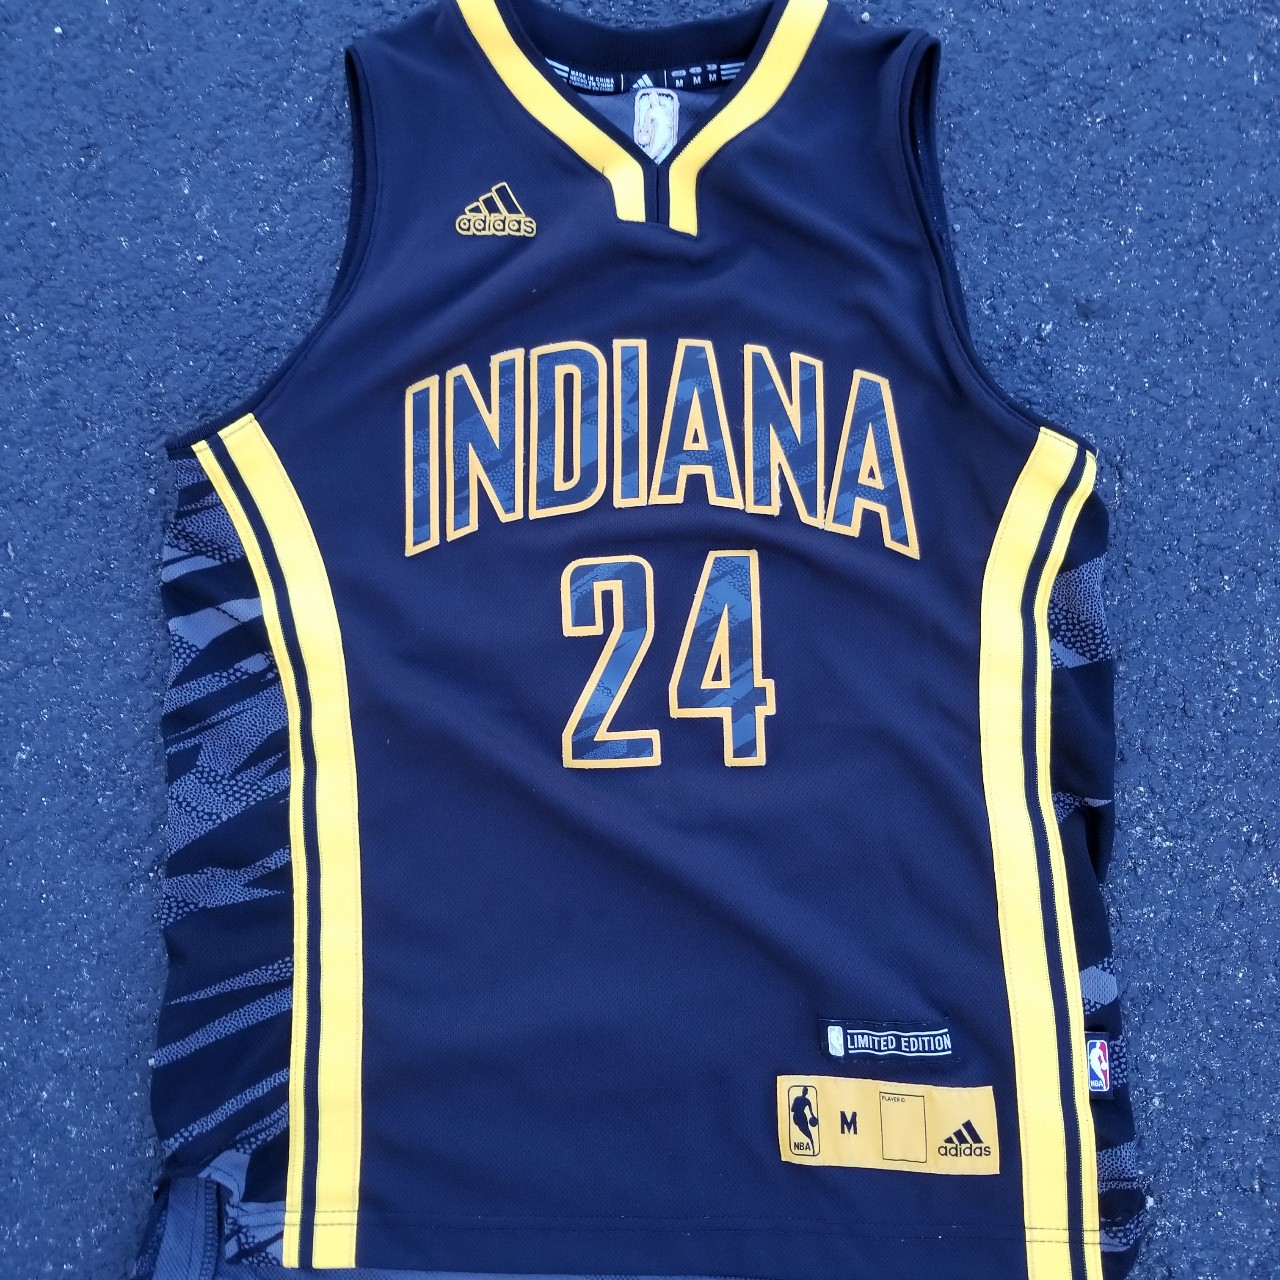 hot sale online 3b6e9 ae2c4 Paul George Indiana Pacers jersey - size youth... - Depop